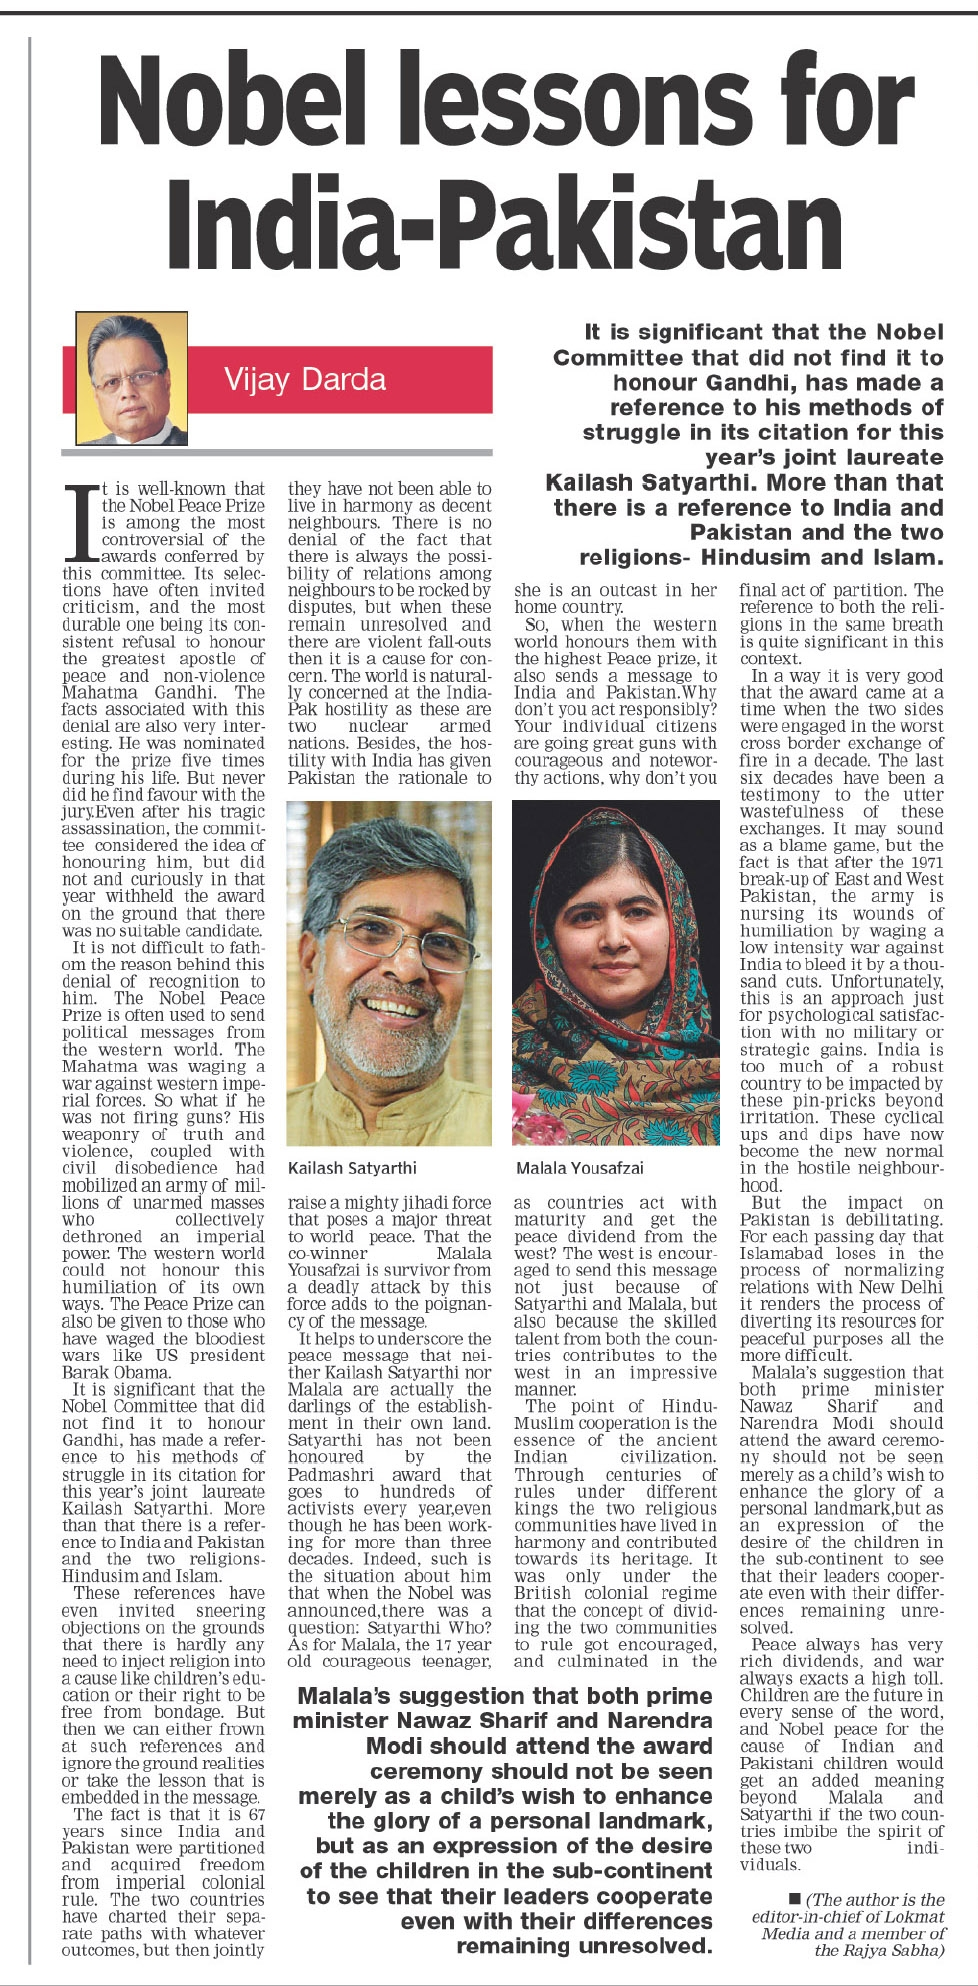 Nobel lessons for India-Pakistan